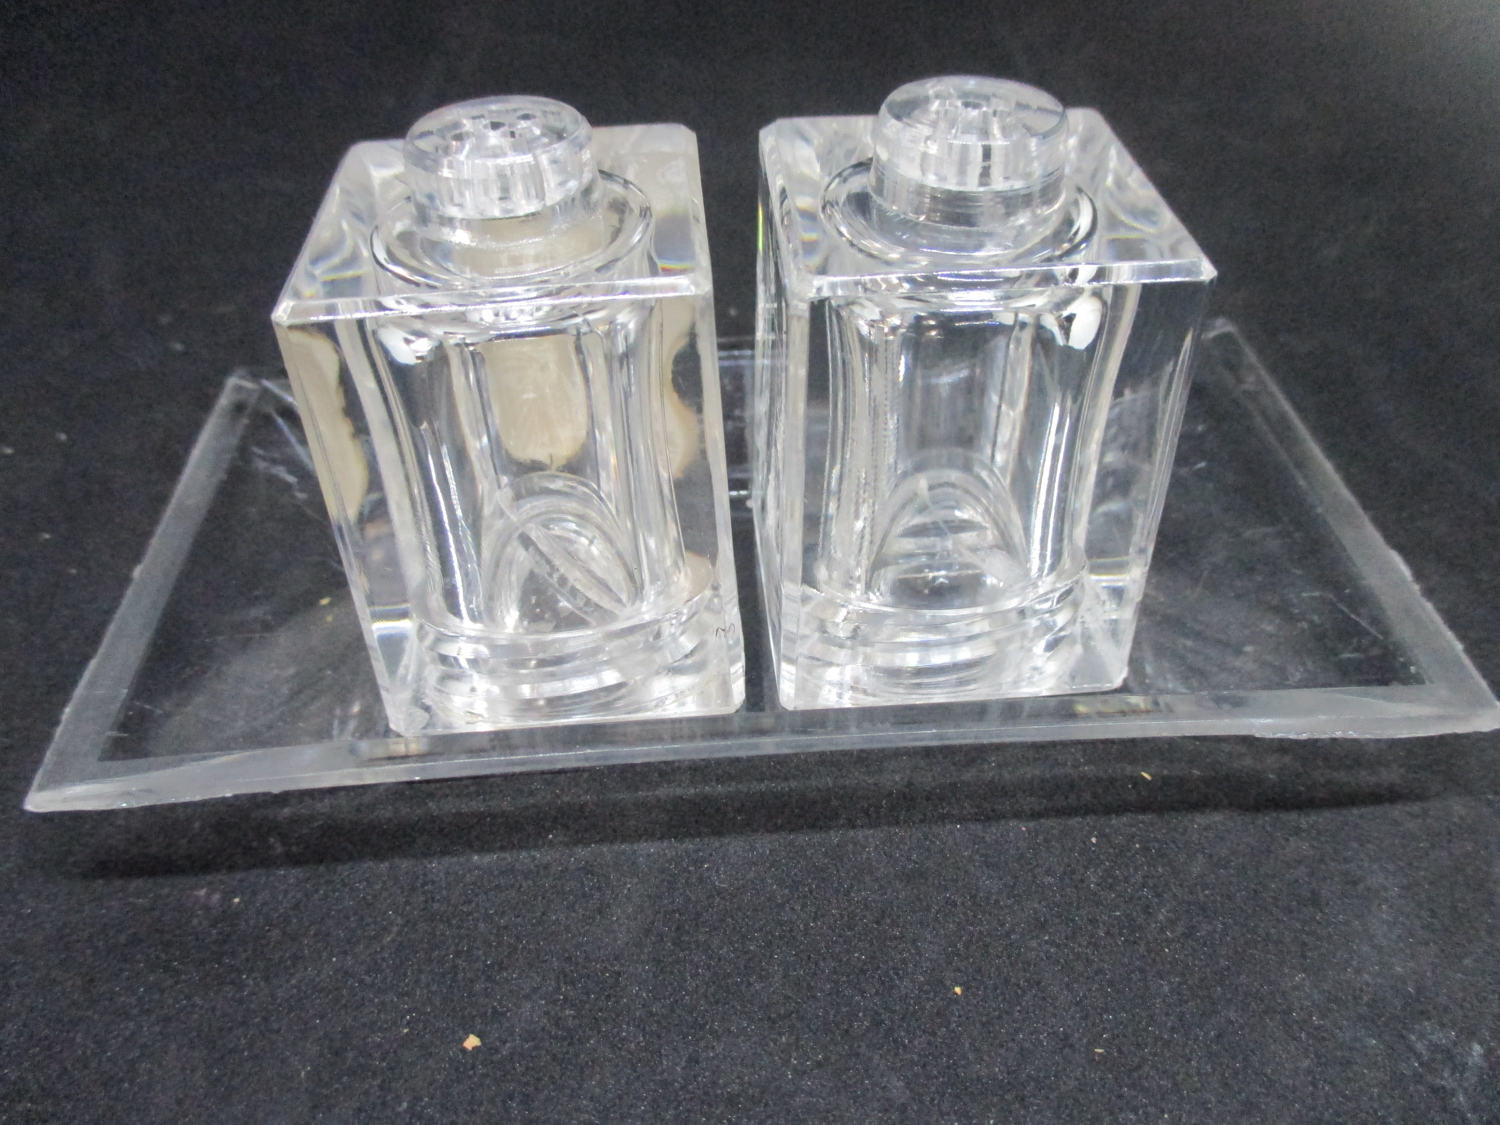 Modern Salt Pepper Shakers Fantastic Mid Century Modern Lucite Square Salt Pepper Shakers Lucite Tray Decor Collectible Display Tableware Kitchen Farmhouse Cottage